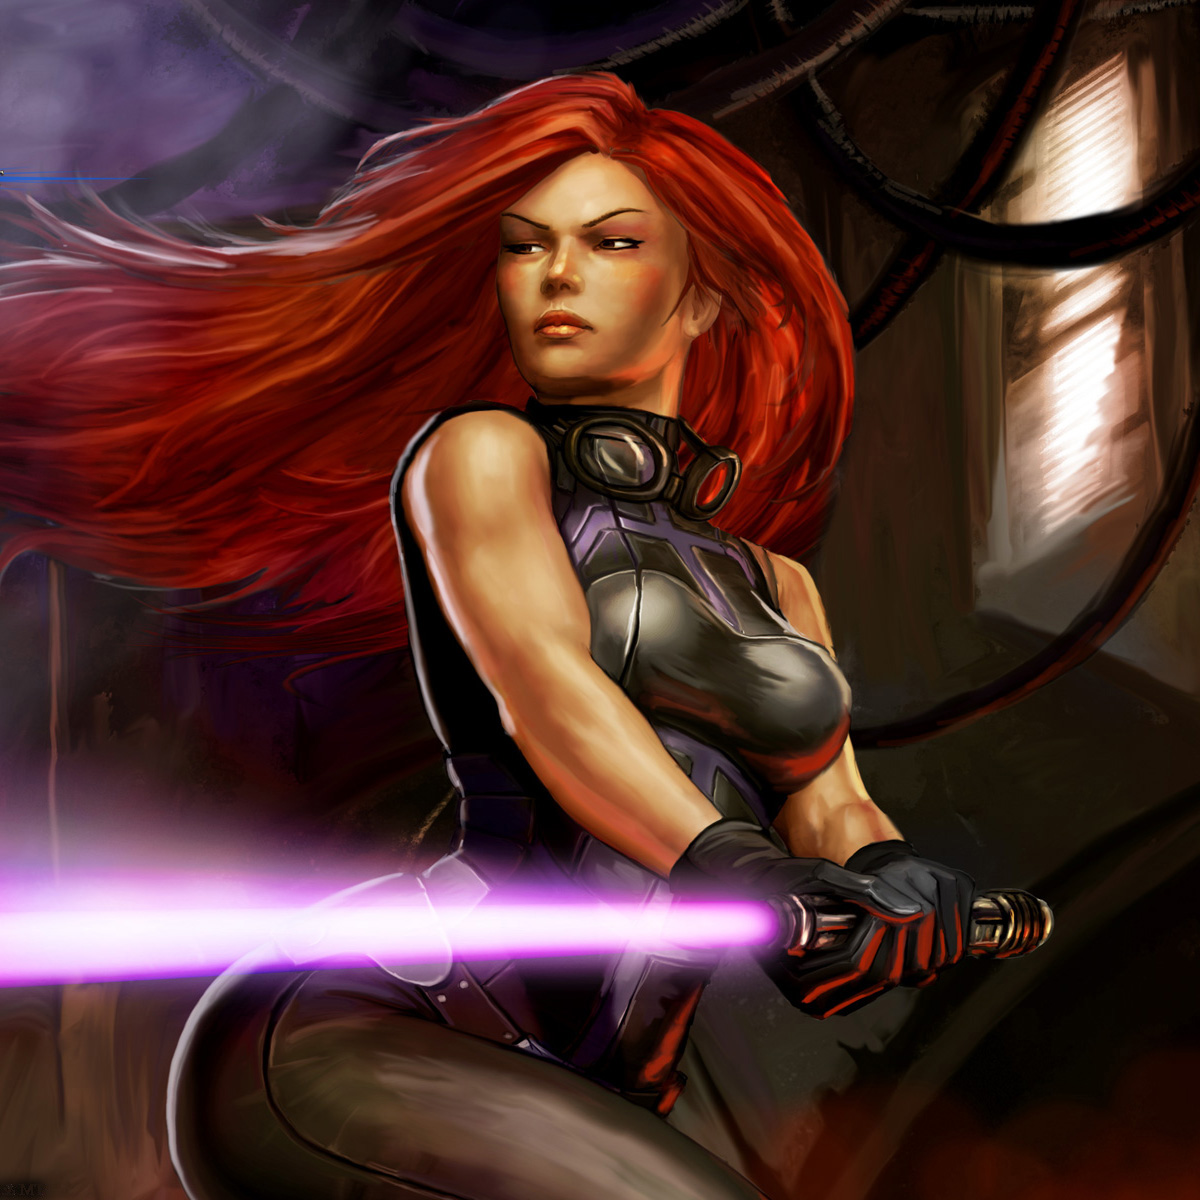 Fan favorite Mara Jade—on the chopping block?